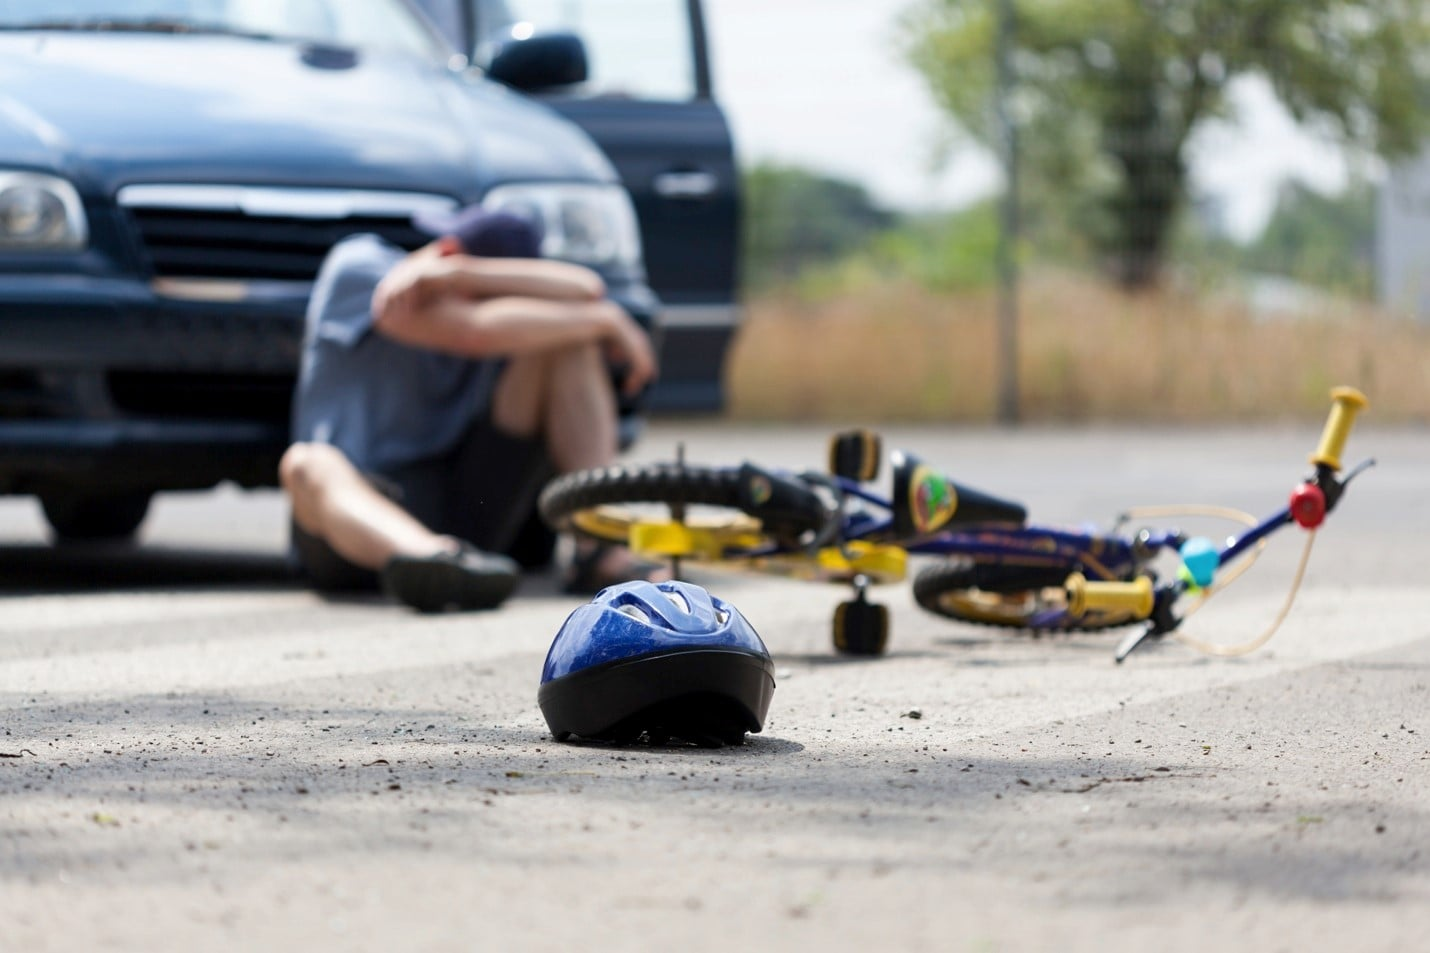 8 Steps to Take If You're in a Bicycle Accident